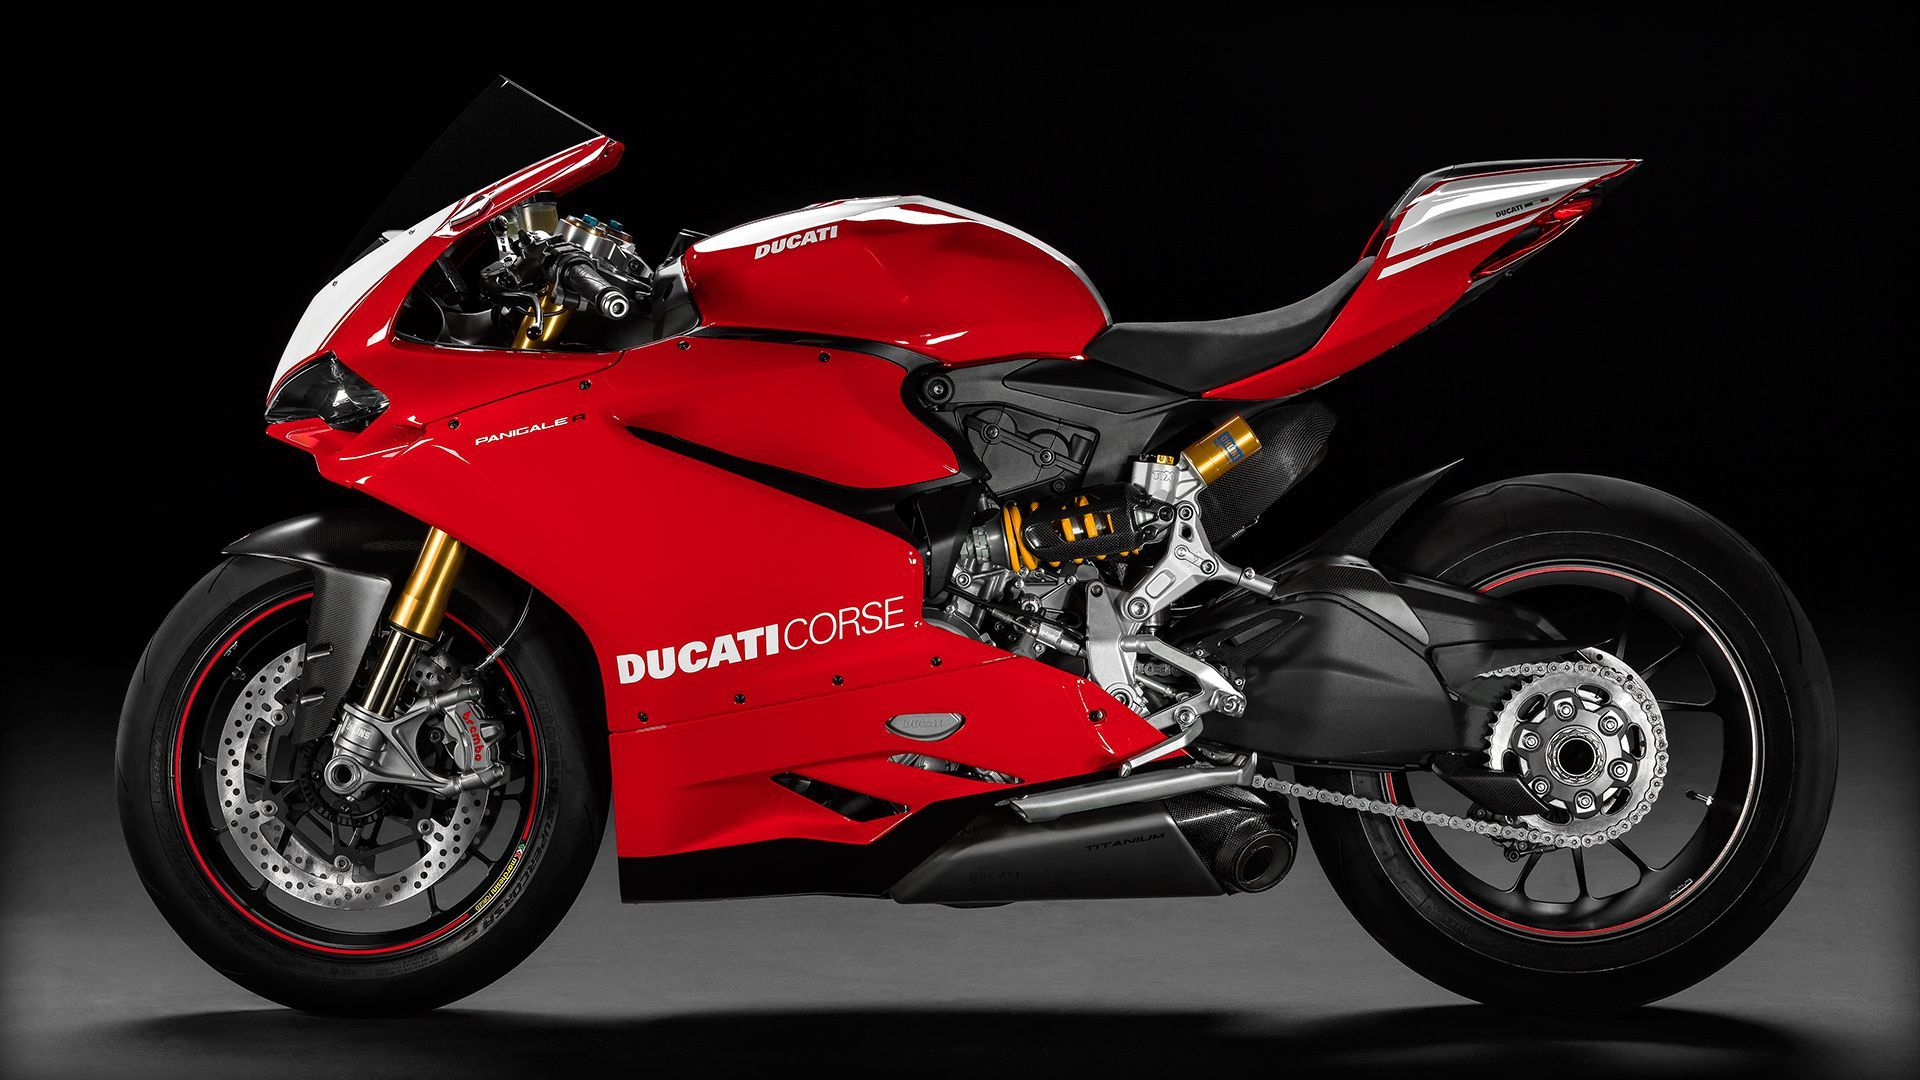 2015 Ducati Panigale R | Panigale R - Left Side View